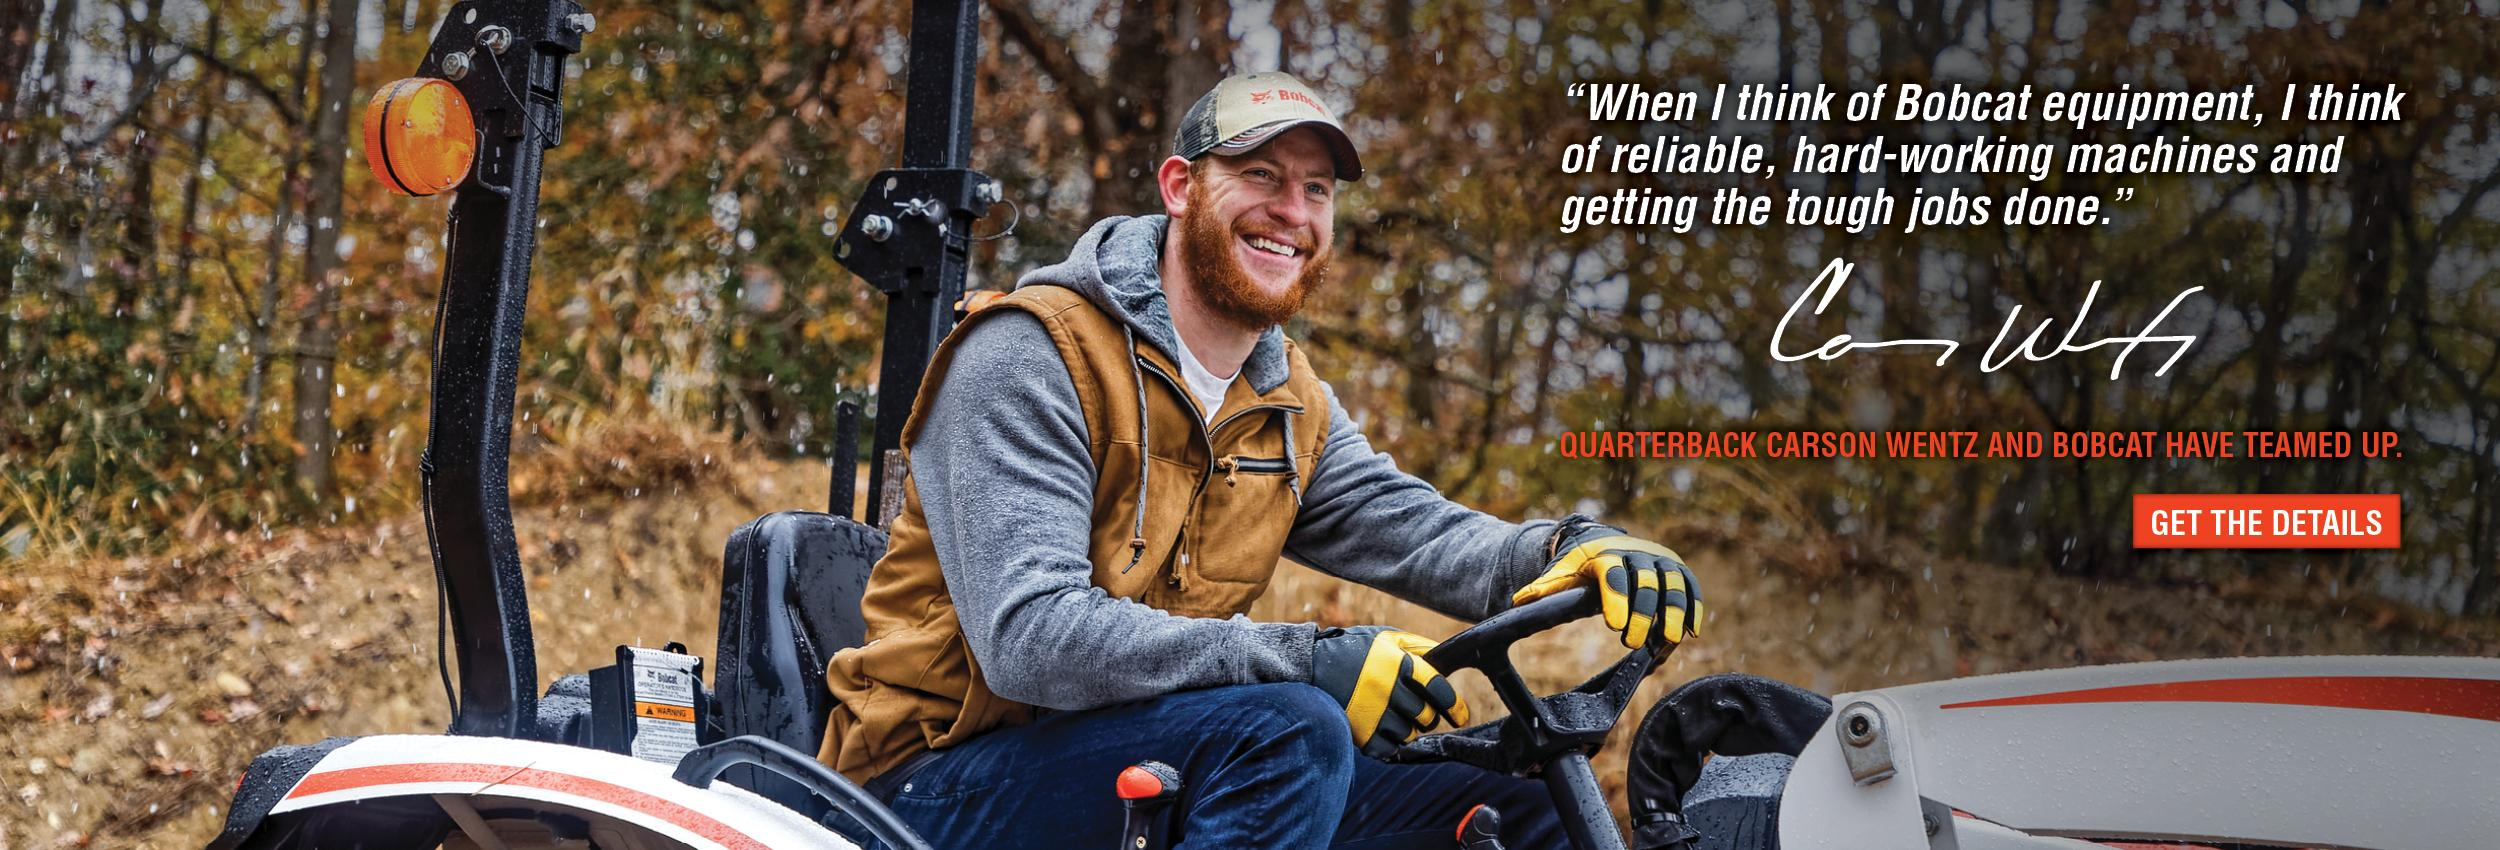 Professional Quarterback Carson Wentz Drives His Bobcat Compact Equipment On Acreage